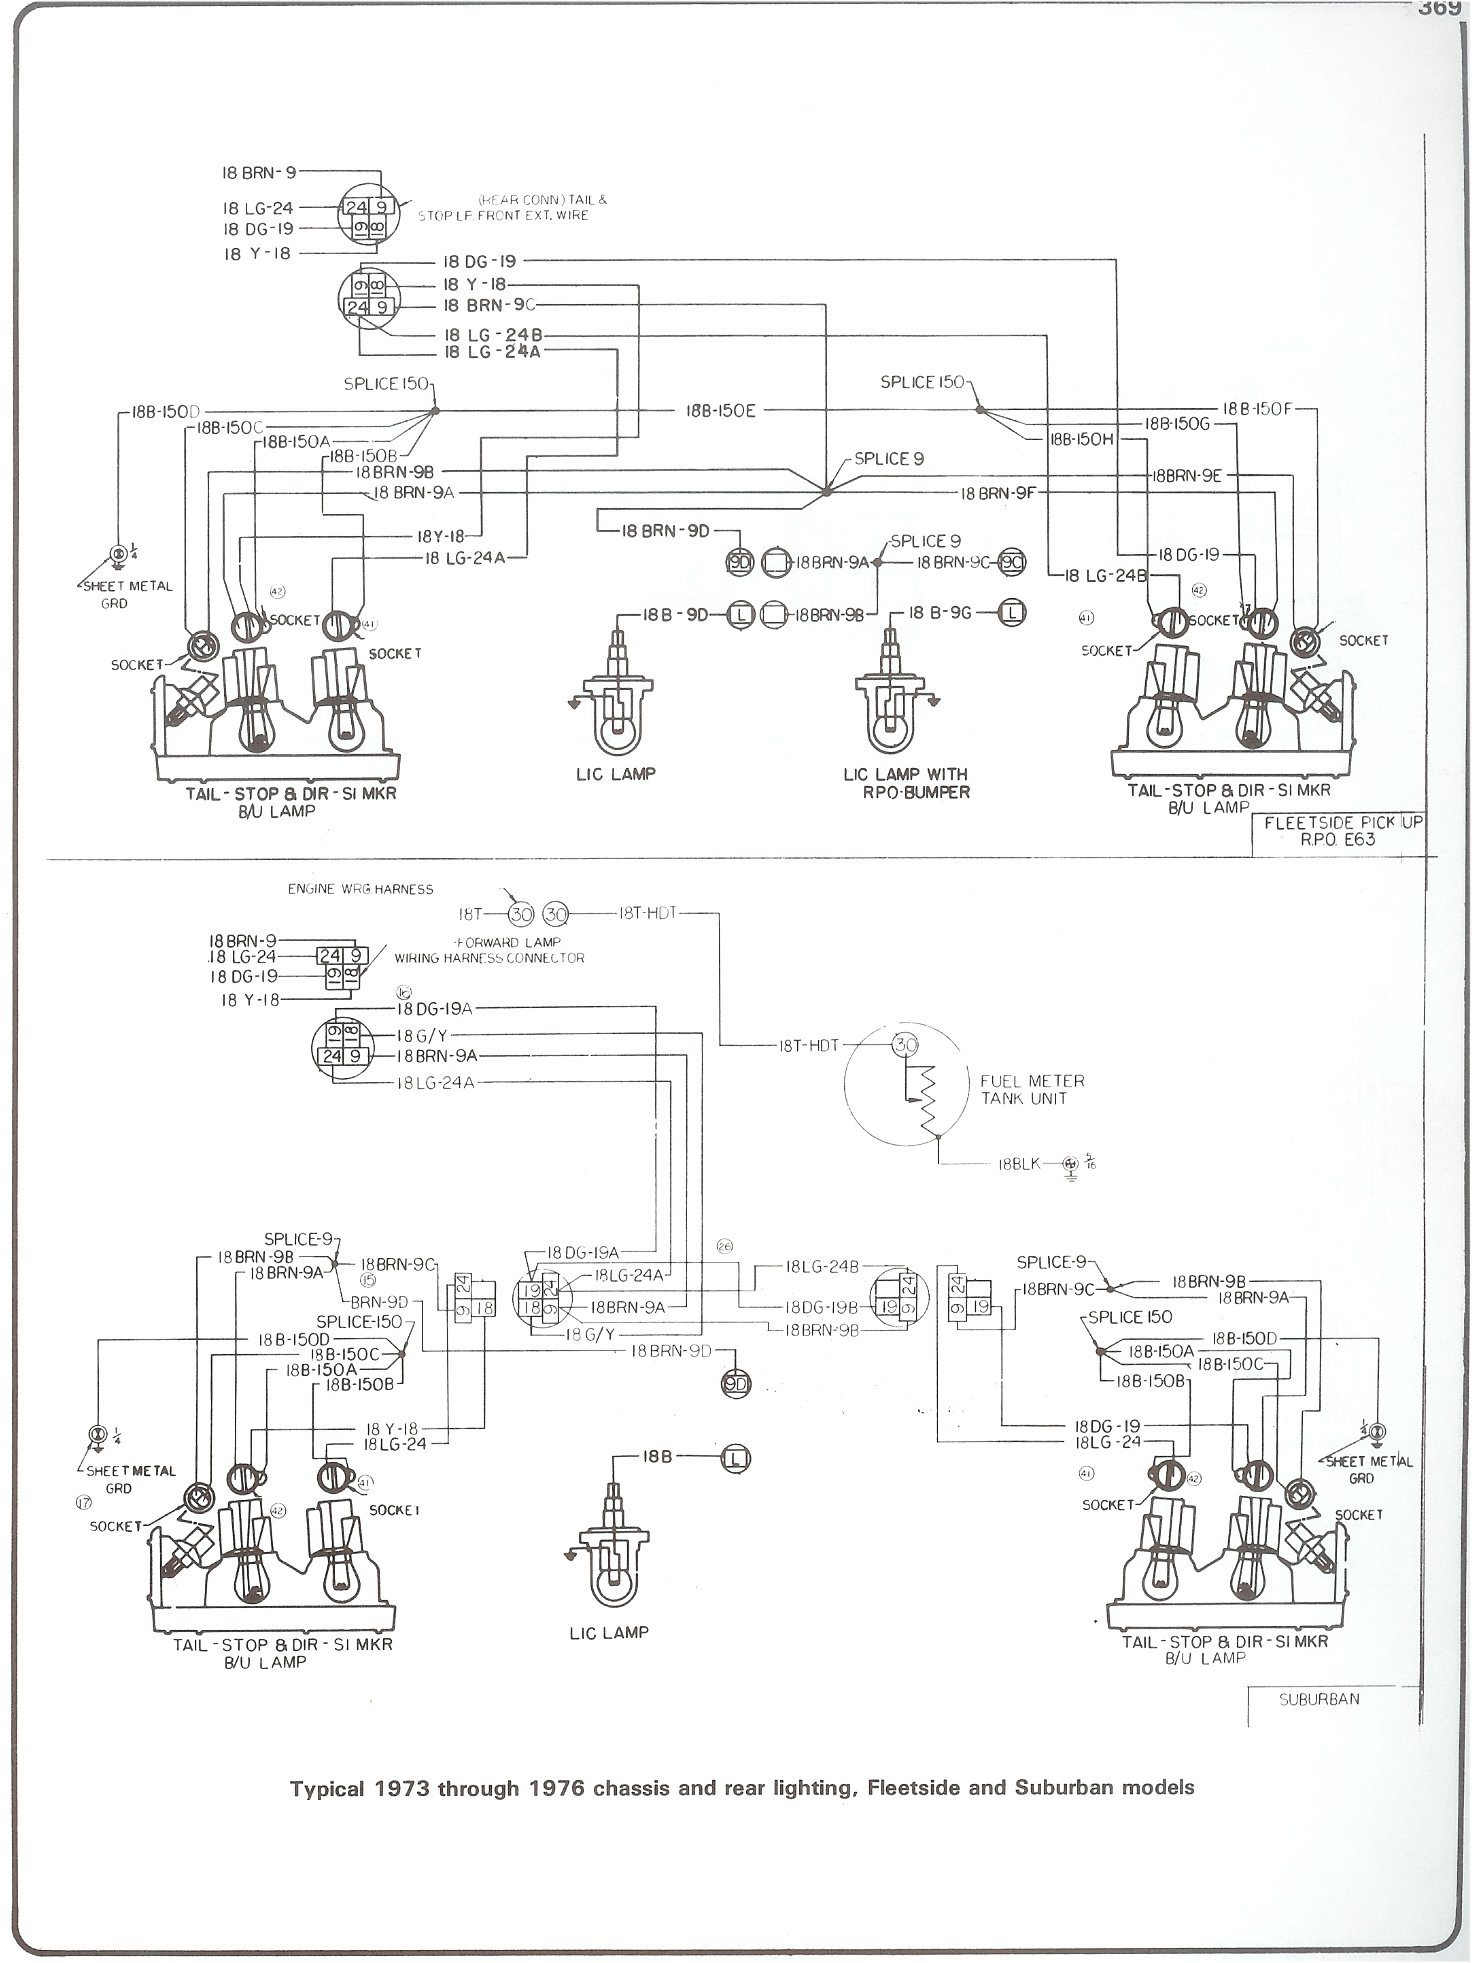 73 76_chass_rr_light_fleet_burb gmc motorhome wiring diagram covington motorhome wiring diagram Kenwood Model KDC Install Wiring at readyjetset.co